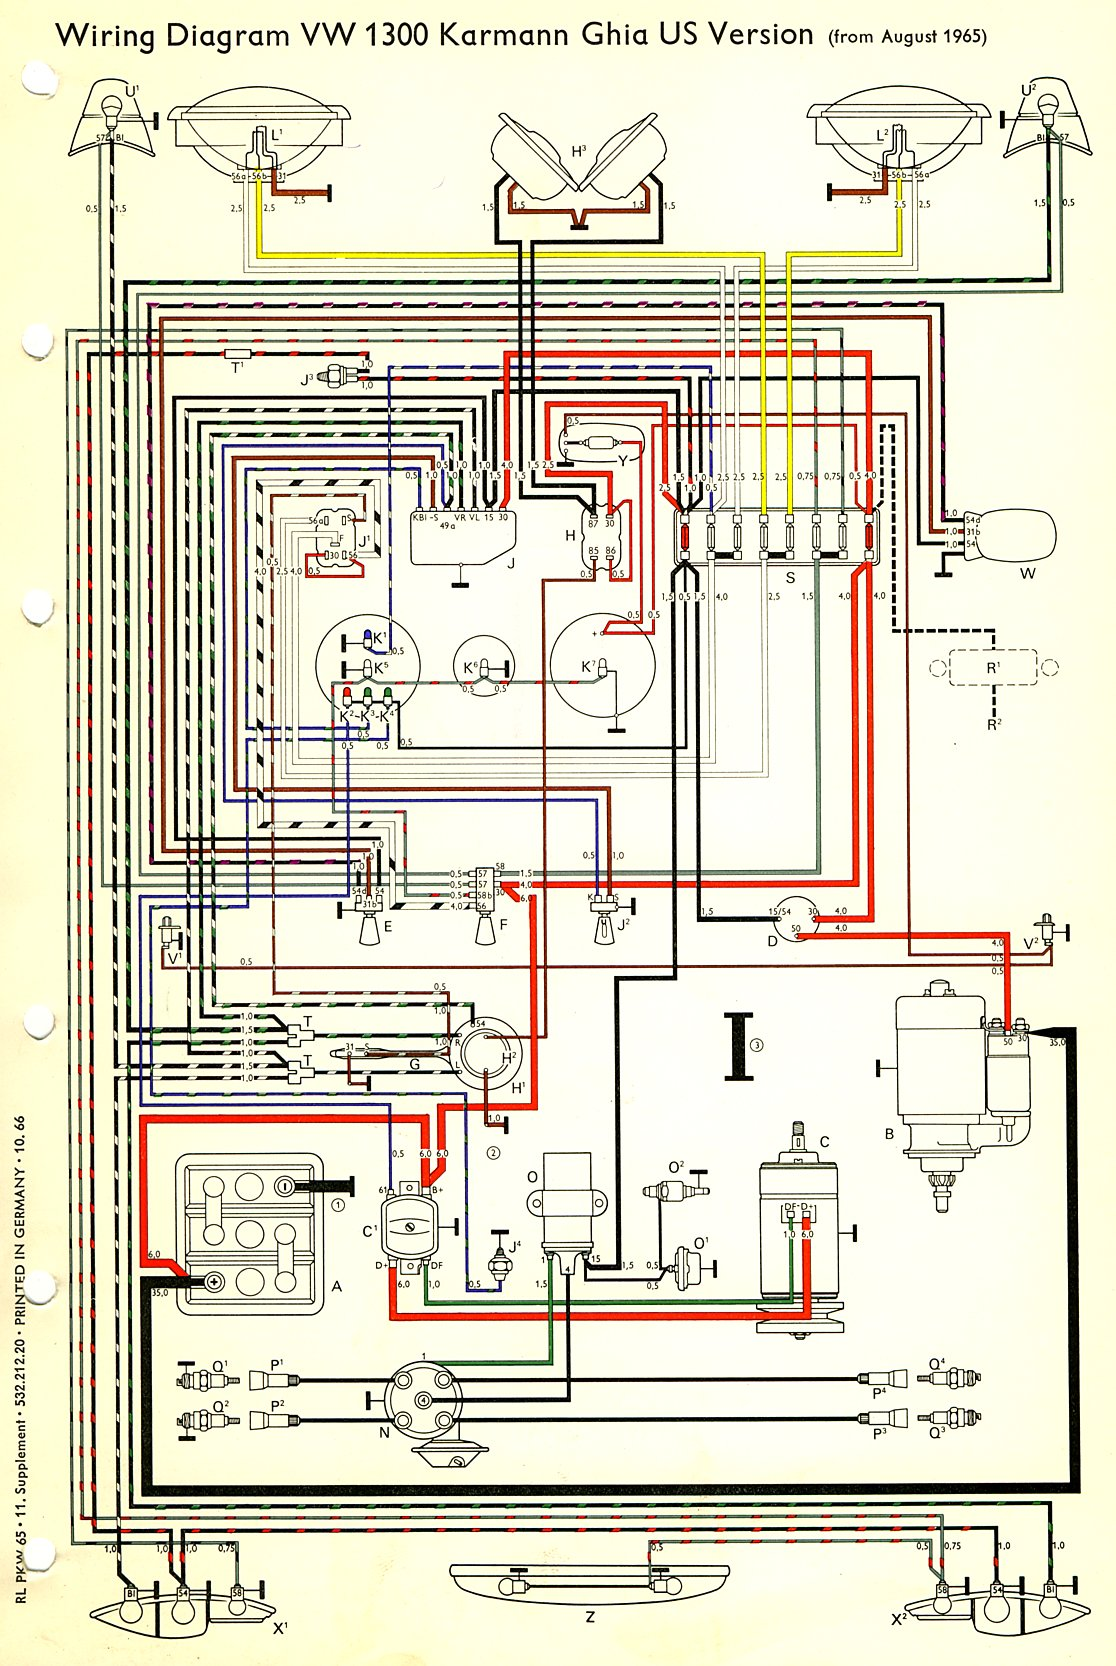 ghia_66_USA thesamba com karmann ghia wiring diagrams wiring diagram for dummies at cita.asia